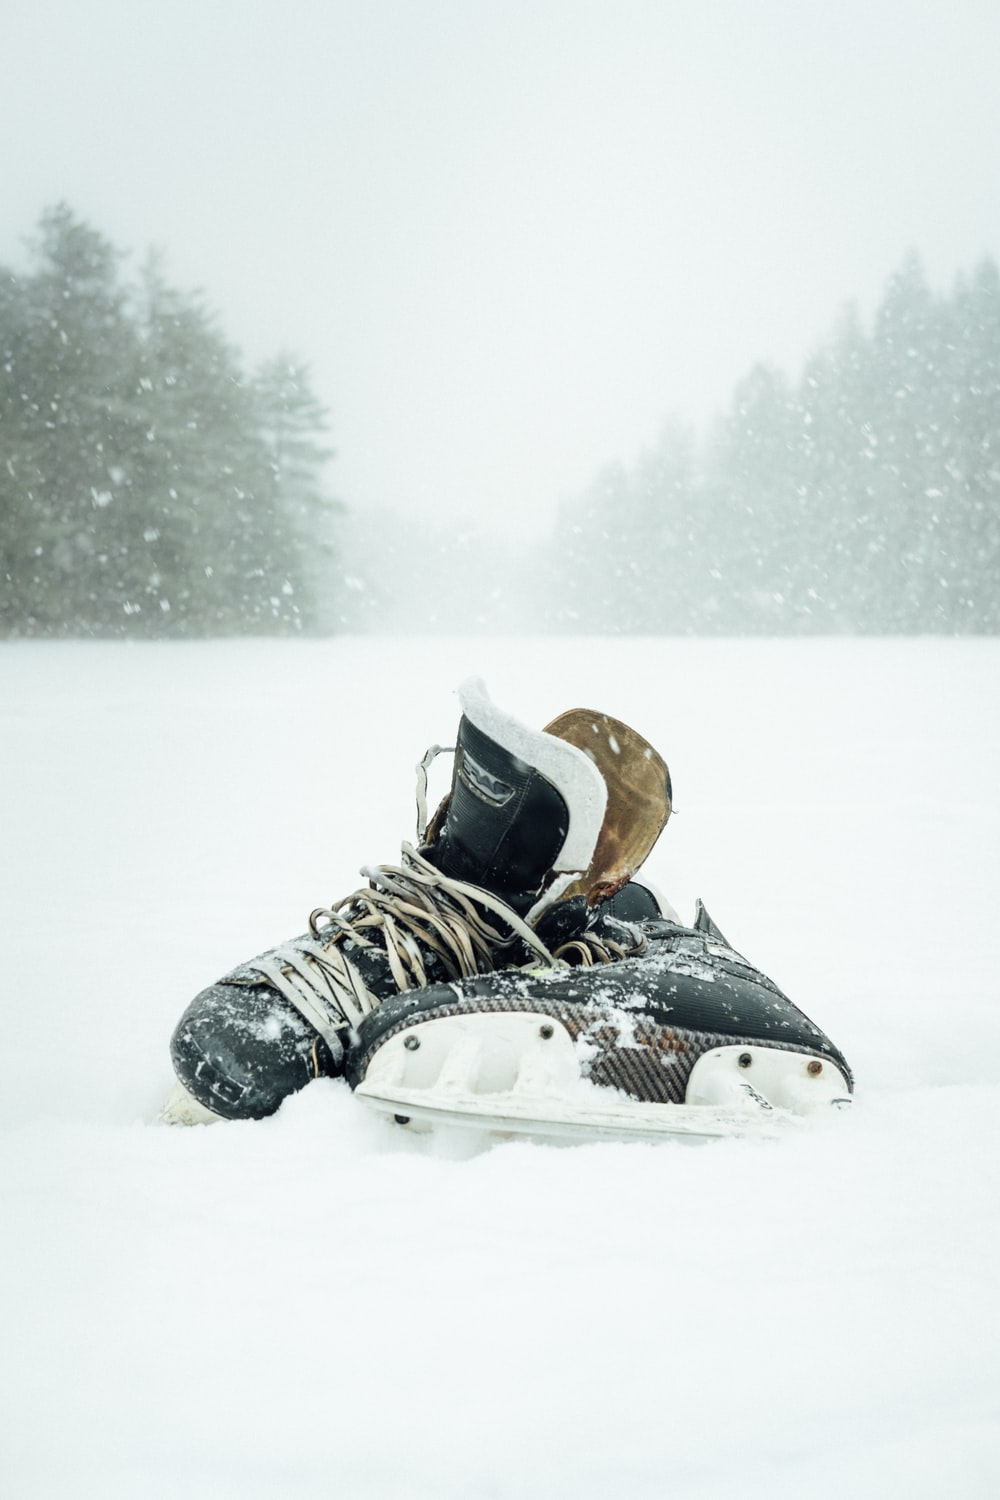 pair of black-and-white ice skates surrounded by snow